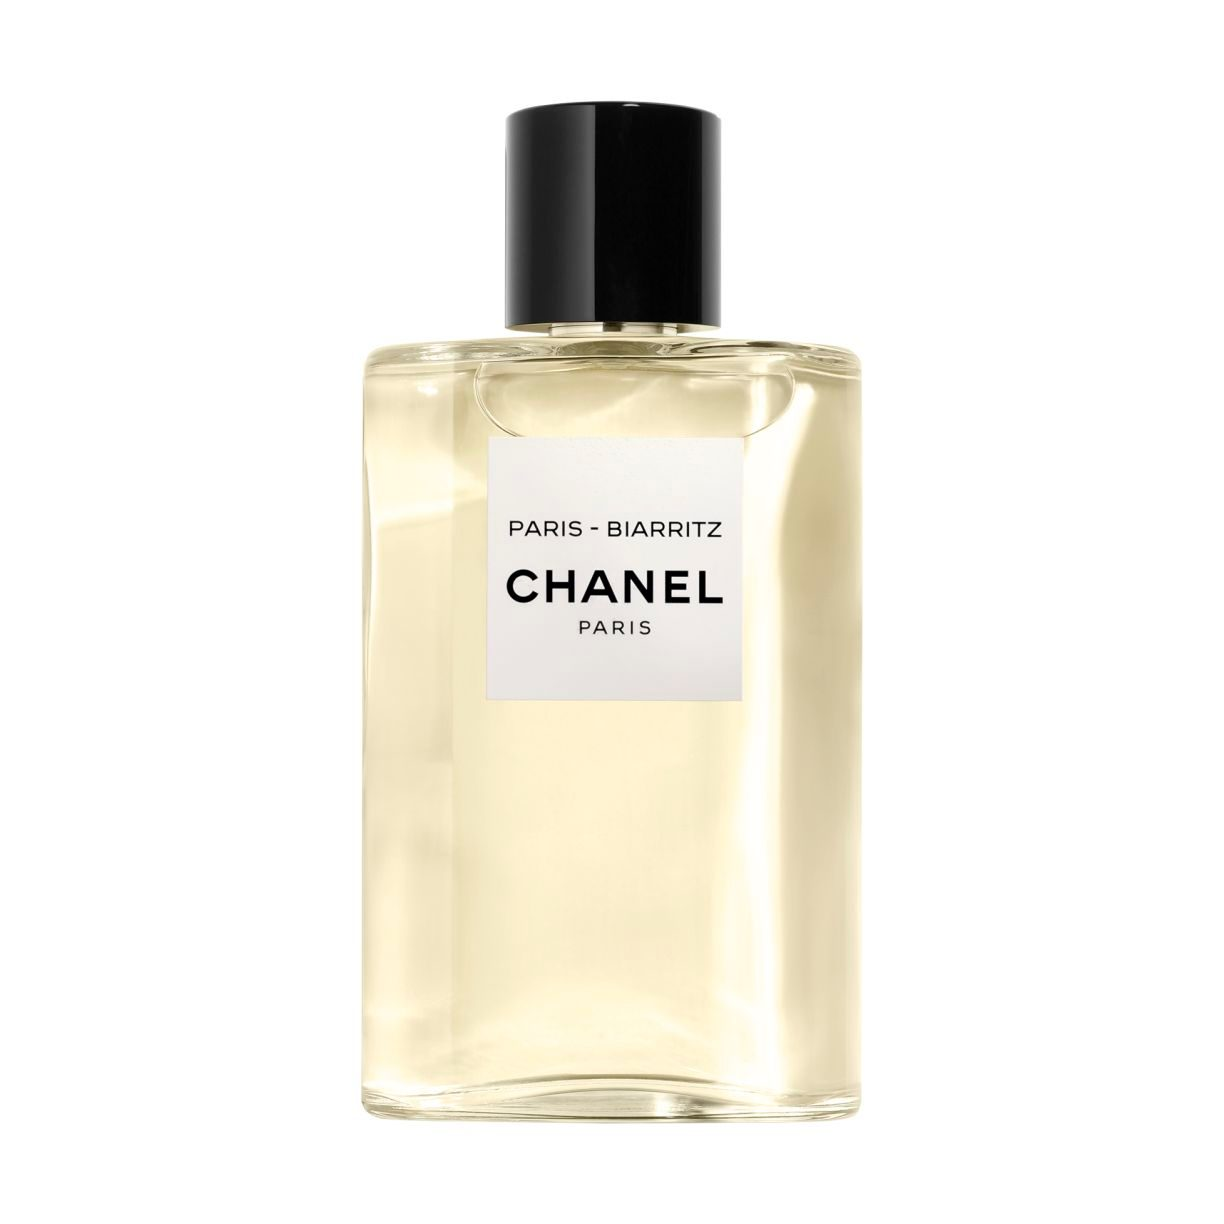 LES EAUX DE CHANEL PARIS - BIARRITZ - EAU DE TOILETTE SPRAY